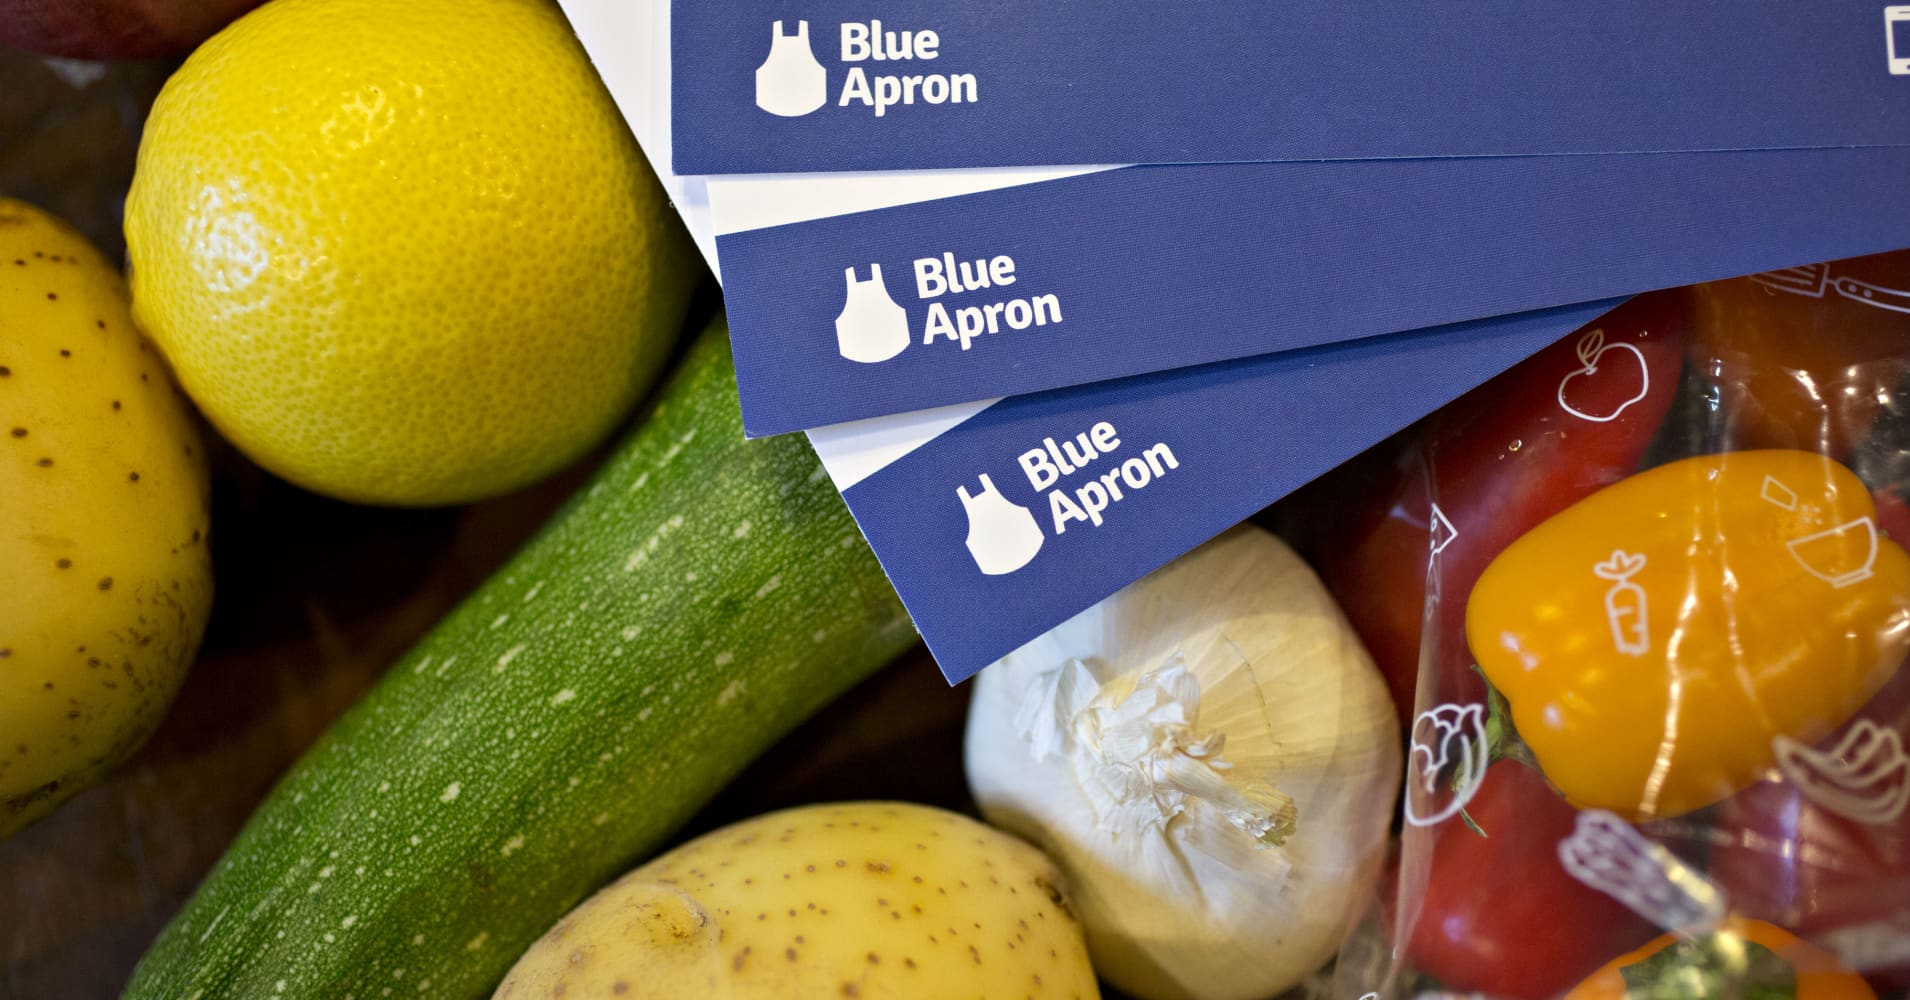 Blue Apron switches meal-kit strategy in hopes of becoming profitable in 2019